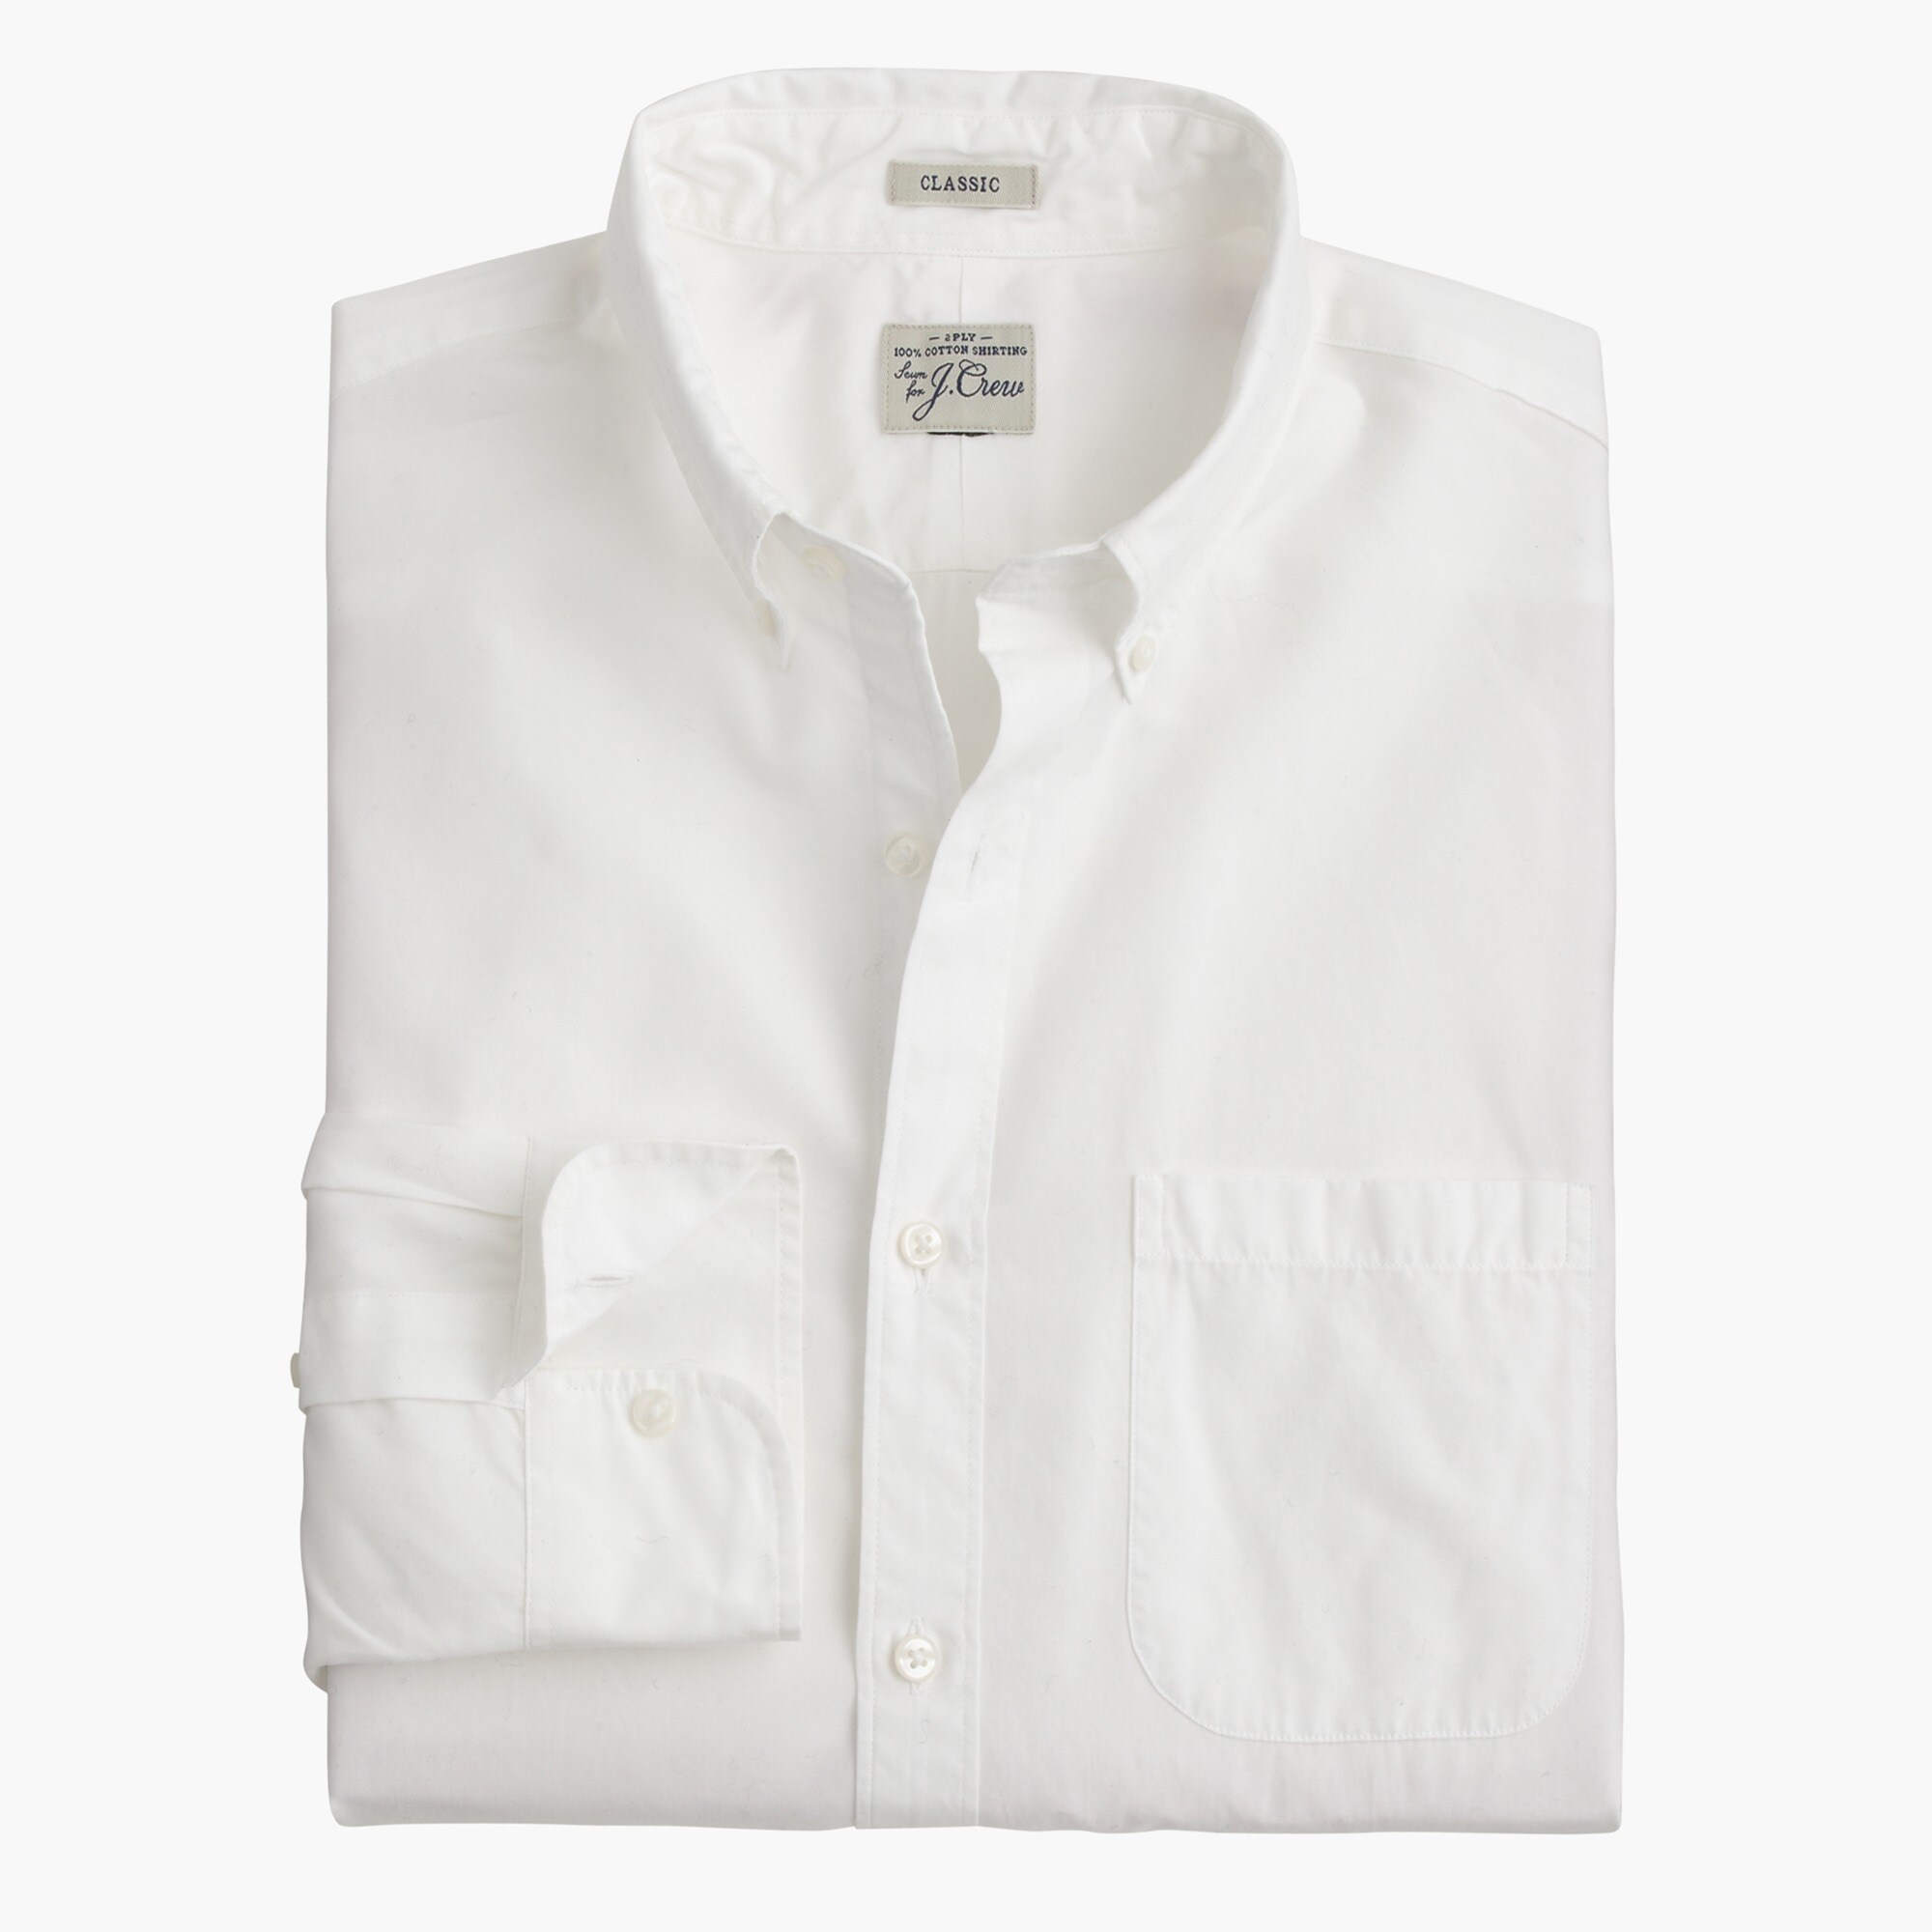 secret wash shirt in white : men's shirts